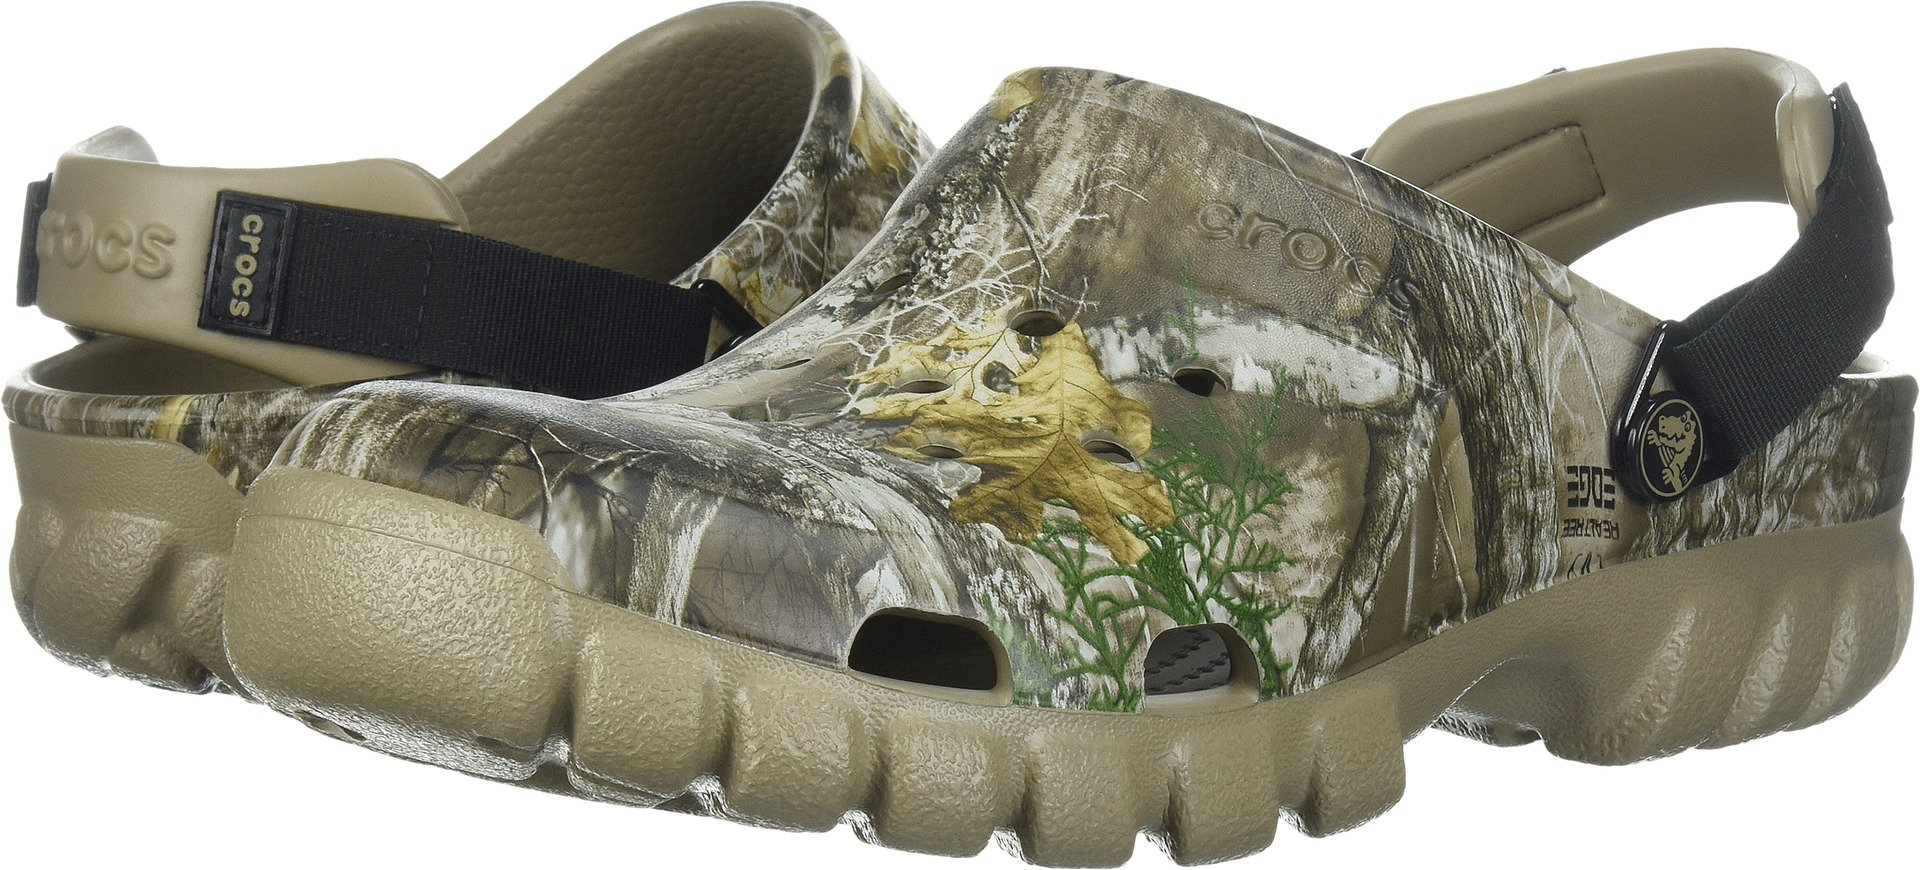 Crocs Offroad Sport Realtree EDG CLG Clog, Khaki, 8 US Men/10 US Women M US by Crocs